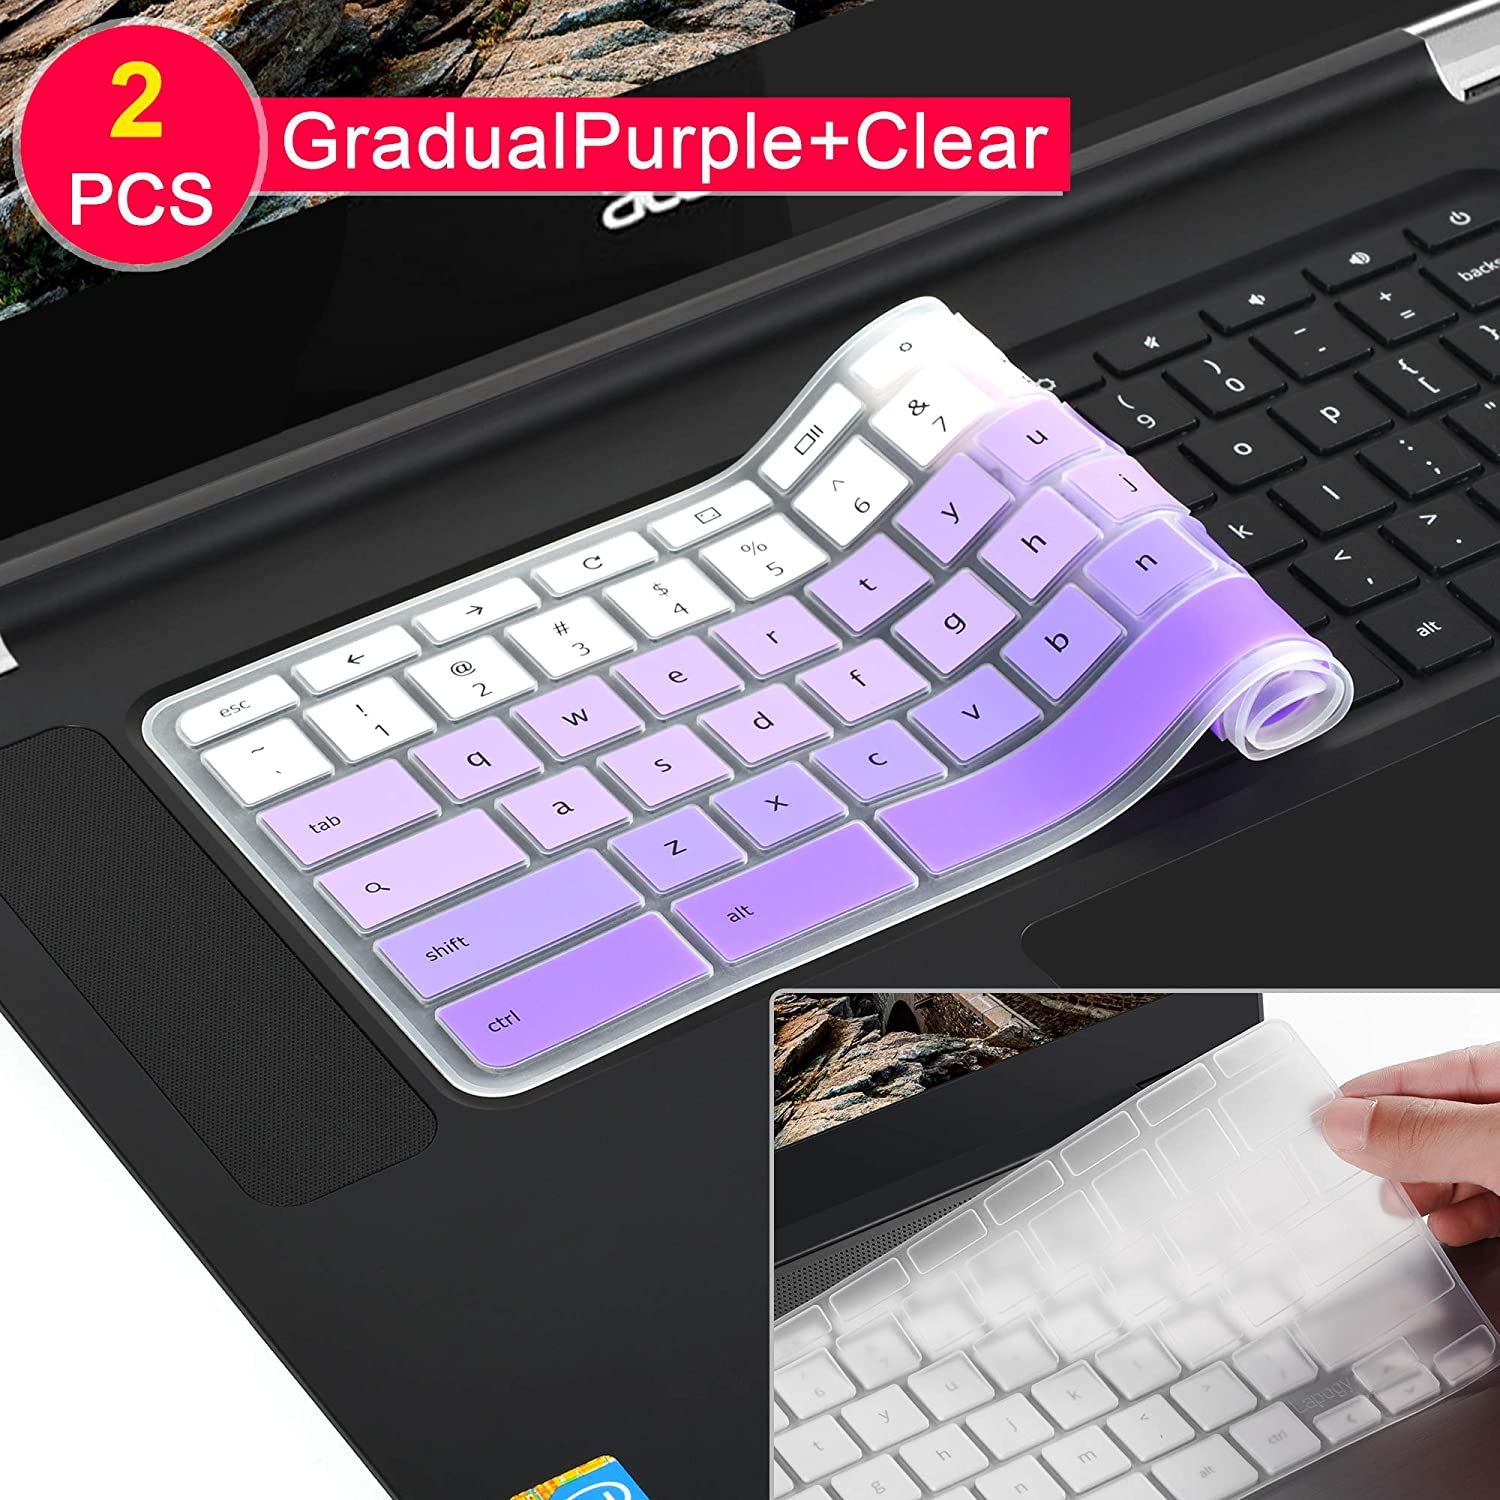 [2 Pack] Keyboard Cover Skin for Newest Acer Premium R11 Chromebook R 11 CB3-131 CB3-132,CB5-132T,CB3-131,Chromebook R 13 CB5-312T,Chromebook 15,CB3-531 CB3-532 CB5-571 C910 (Clear and Gradualpurple)